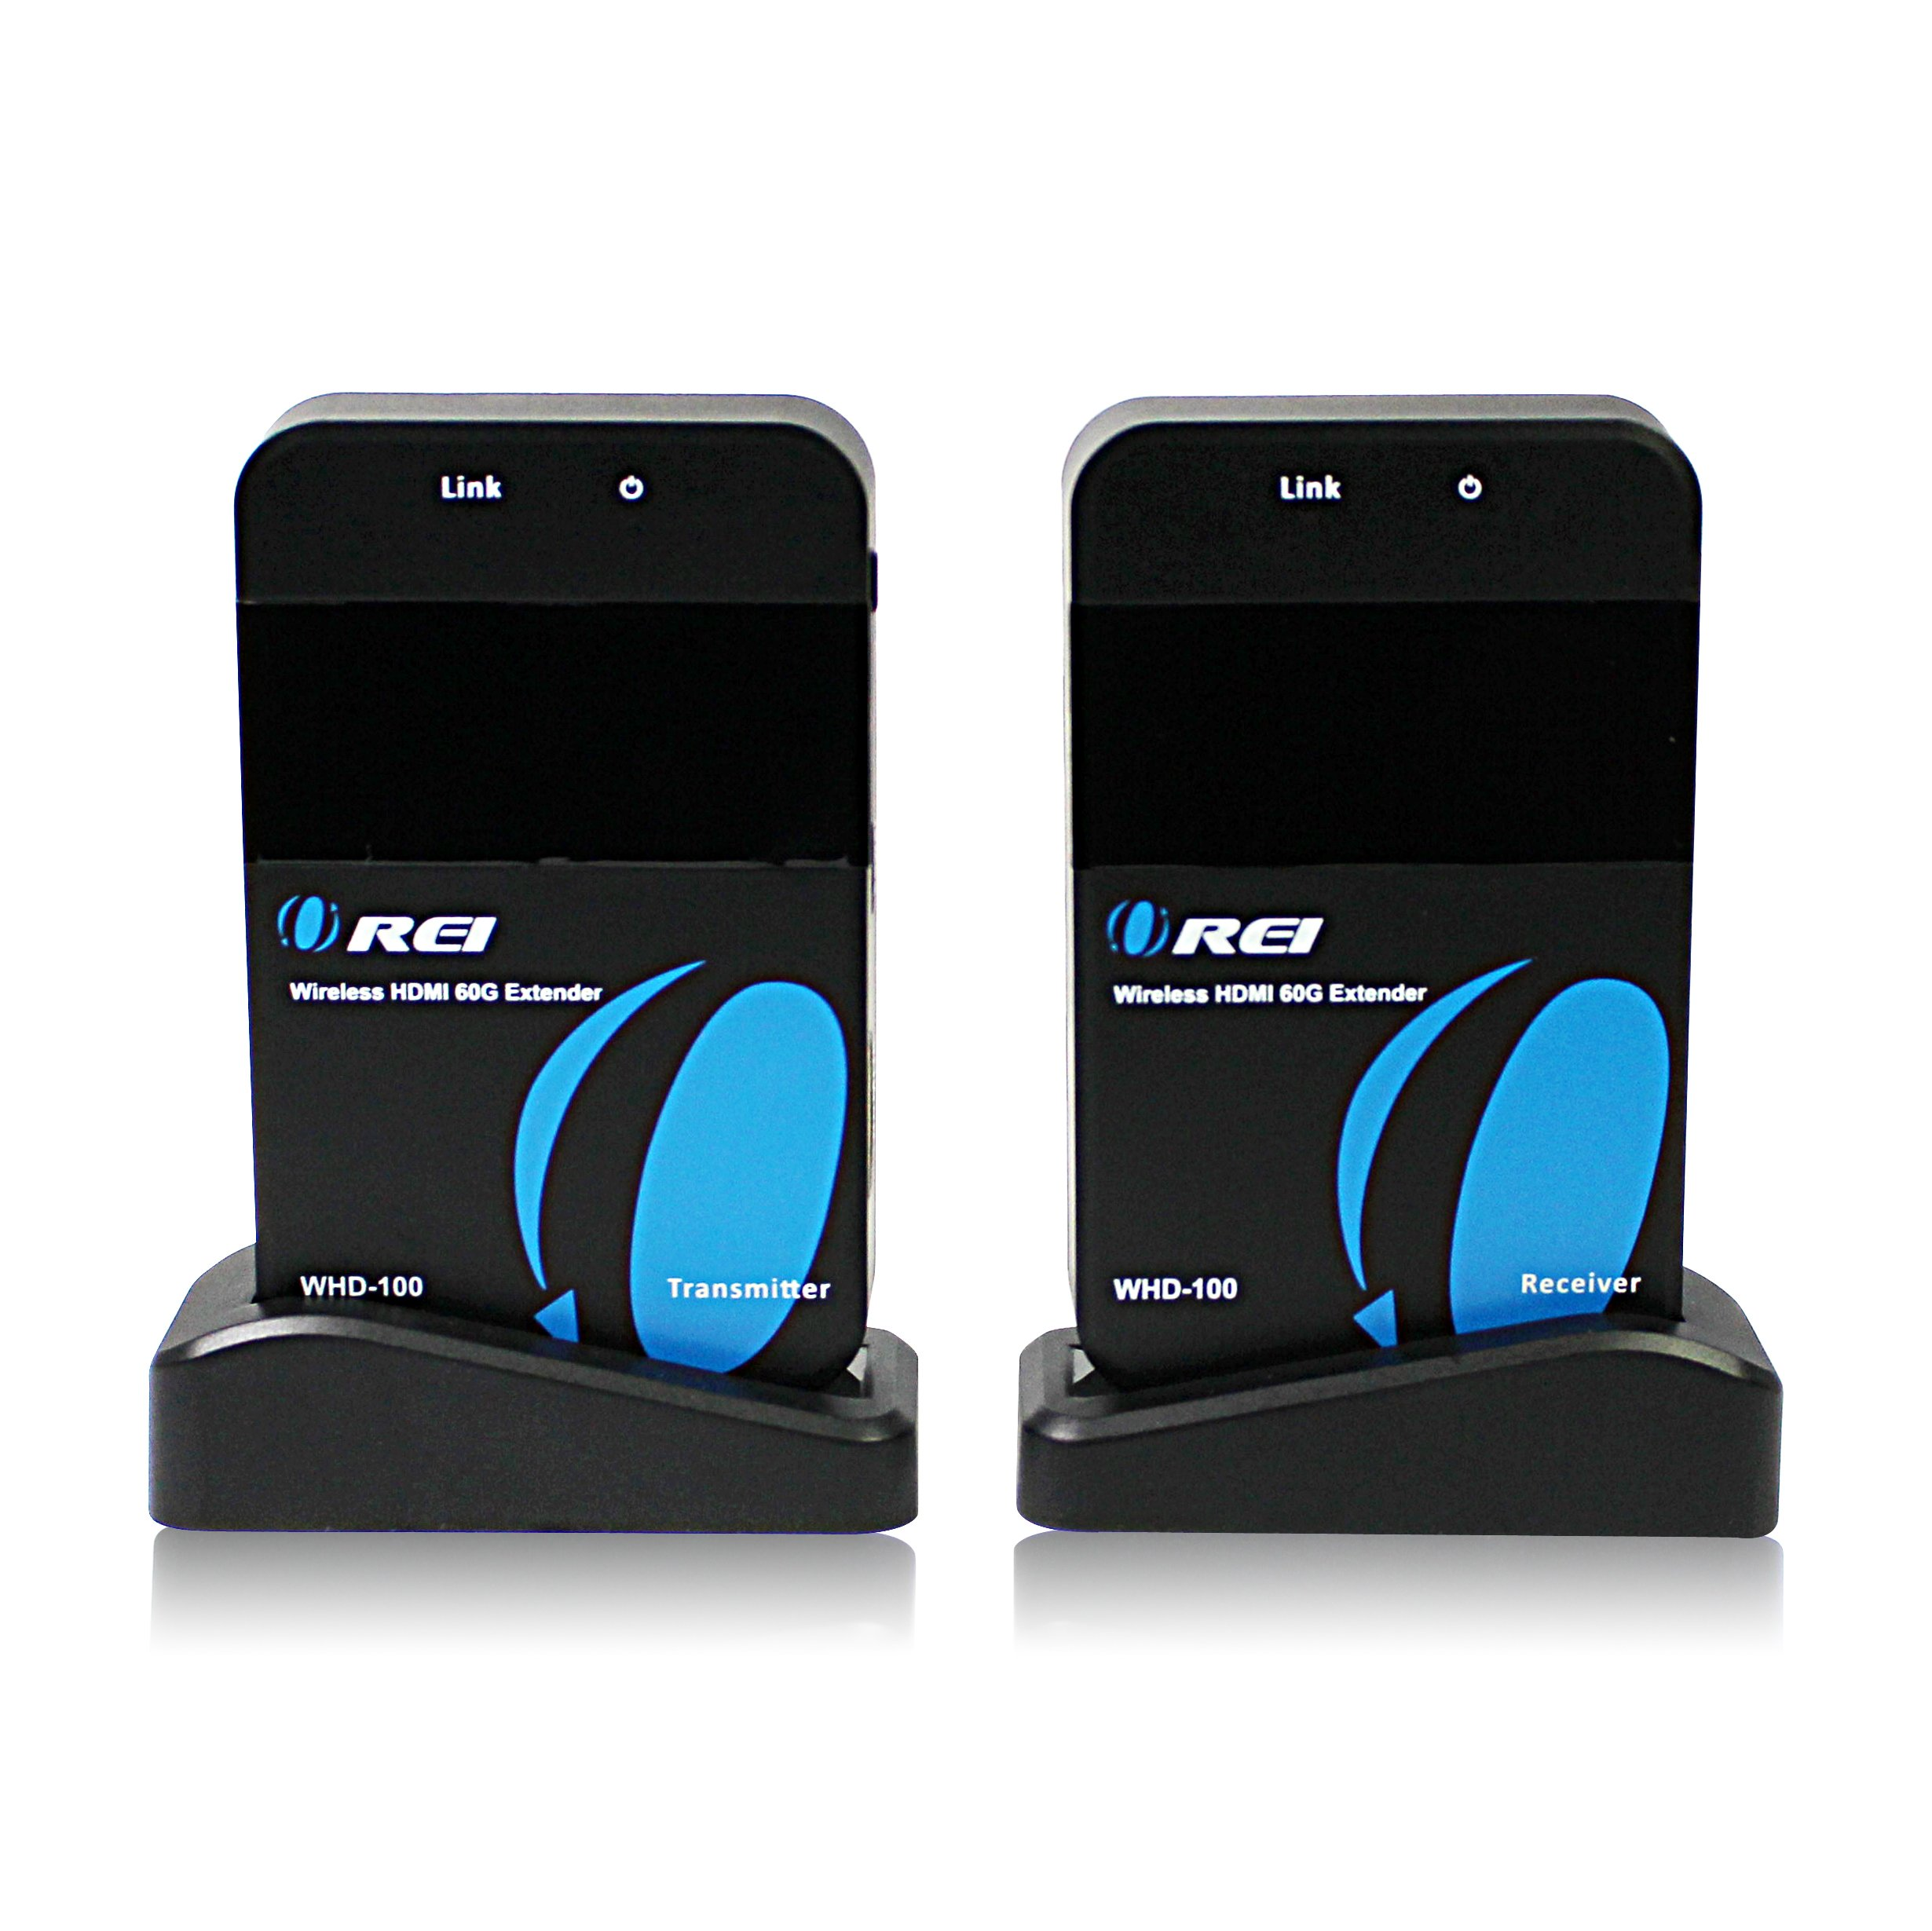 OREI Wireless HDMI Transmitter Extender - Upto 30 Meters - In a Single Room (WHD-100)